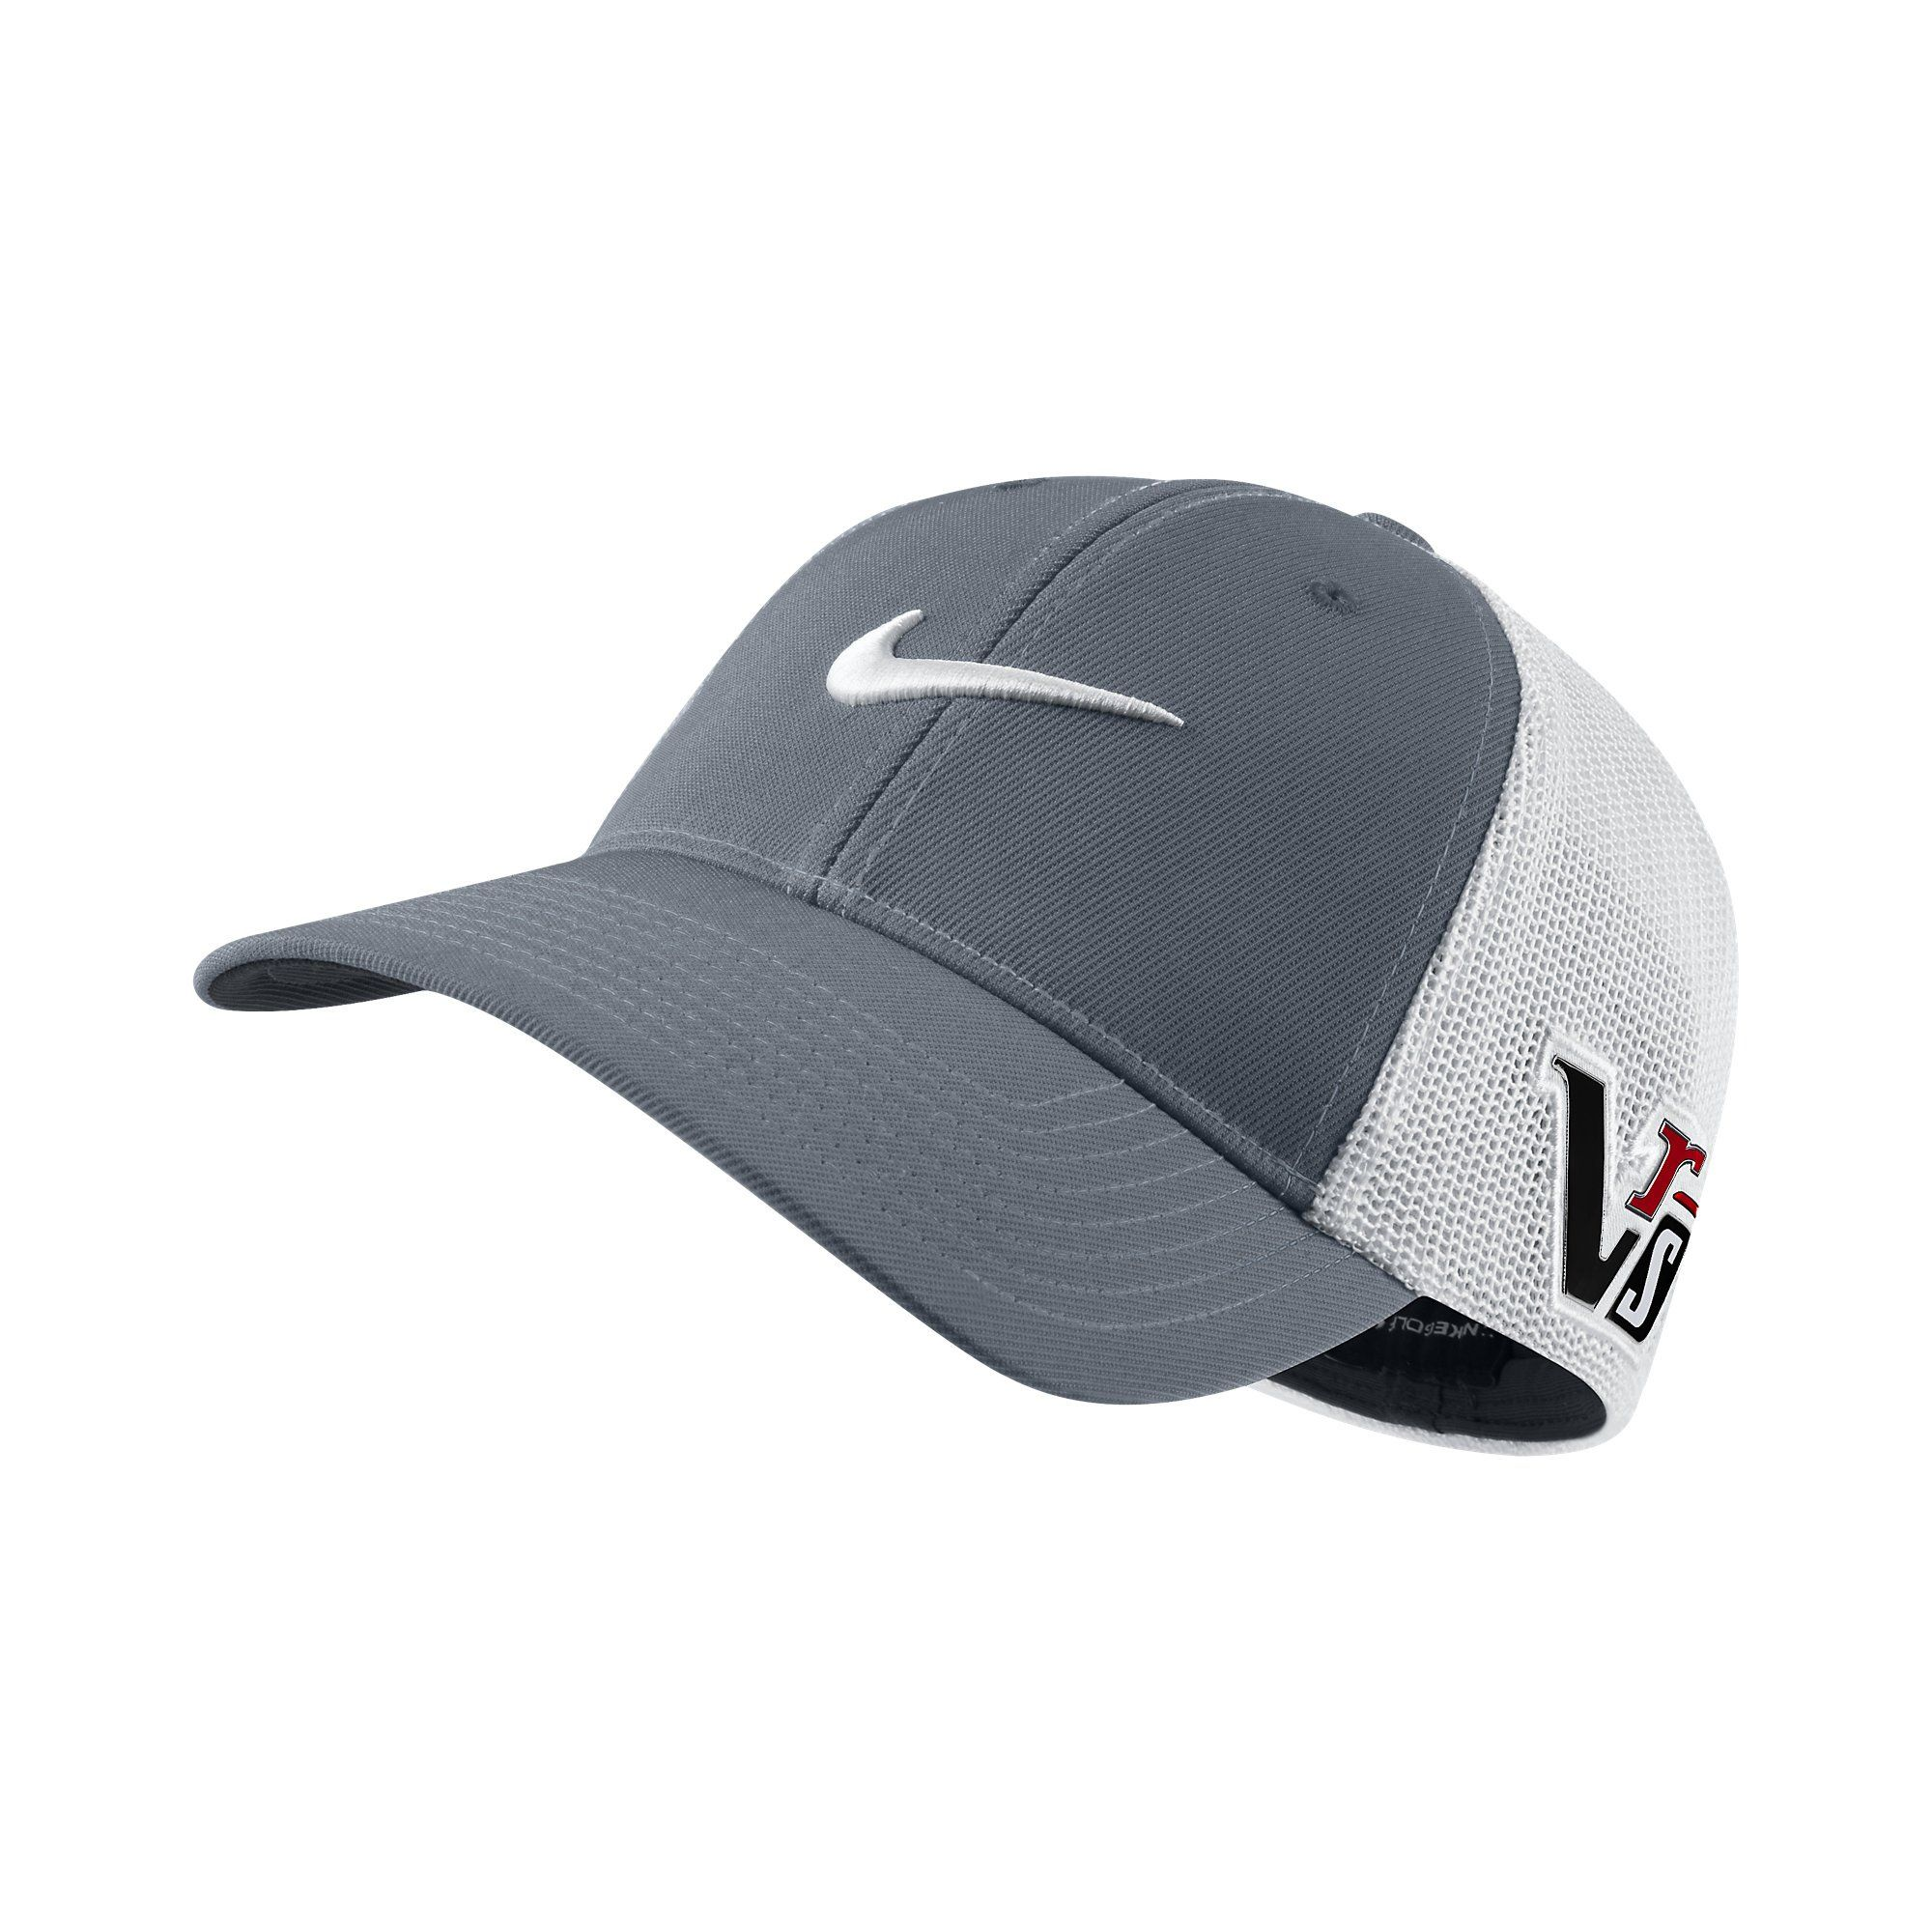 Amazon.com  Nike Men s Tour Flex Fit Golf Cap Hat 06fffddcc8e